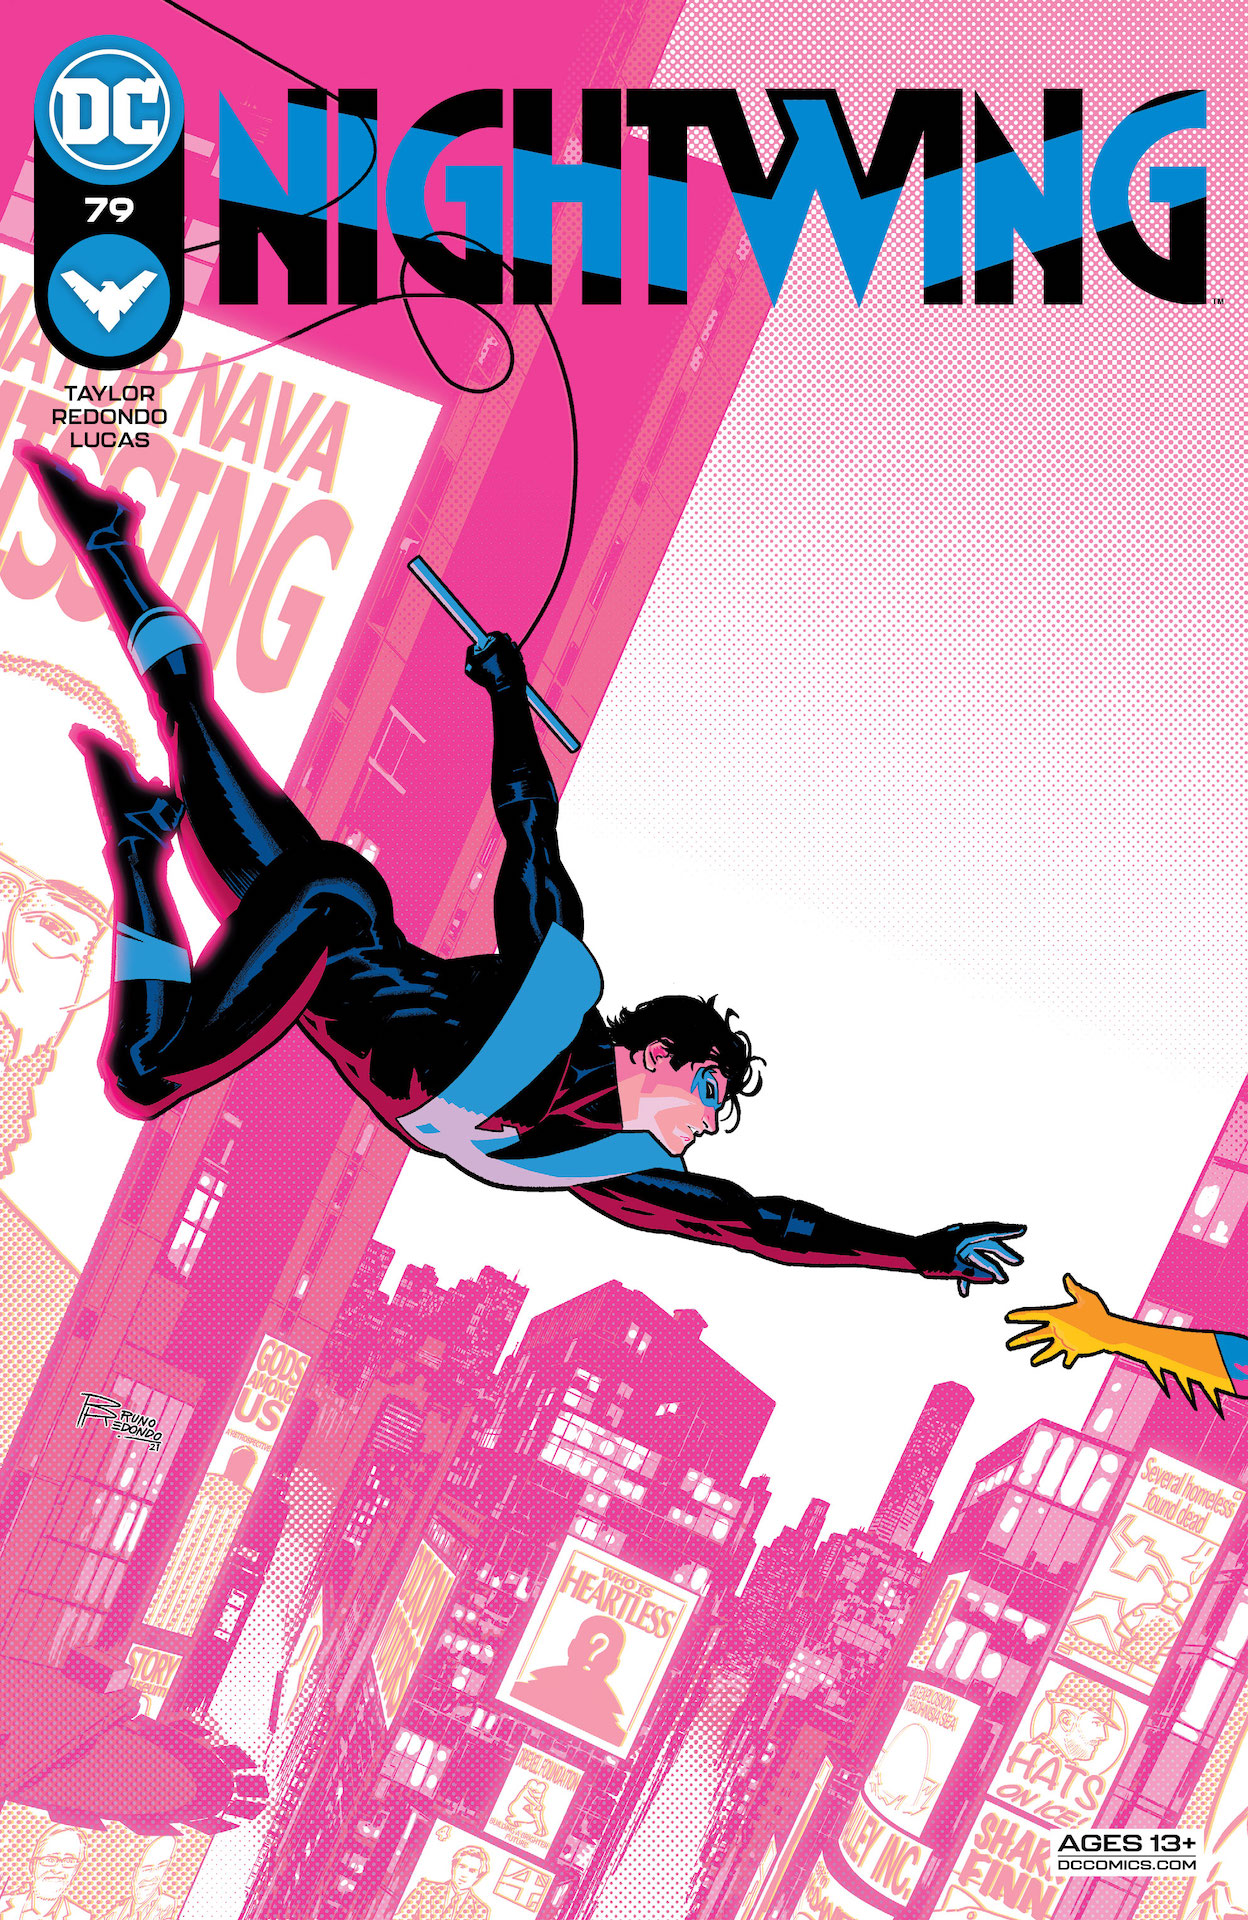 DC Preview: Nightwing #79